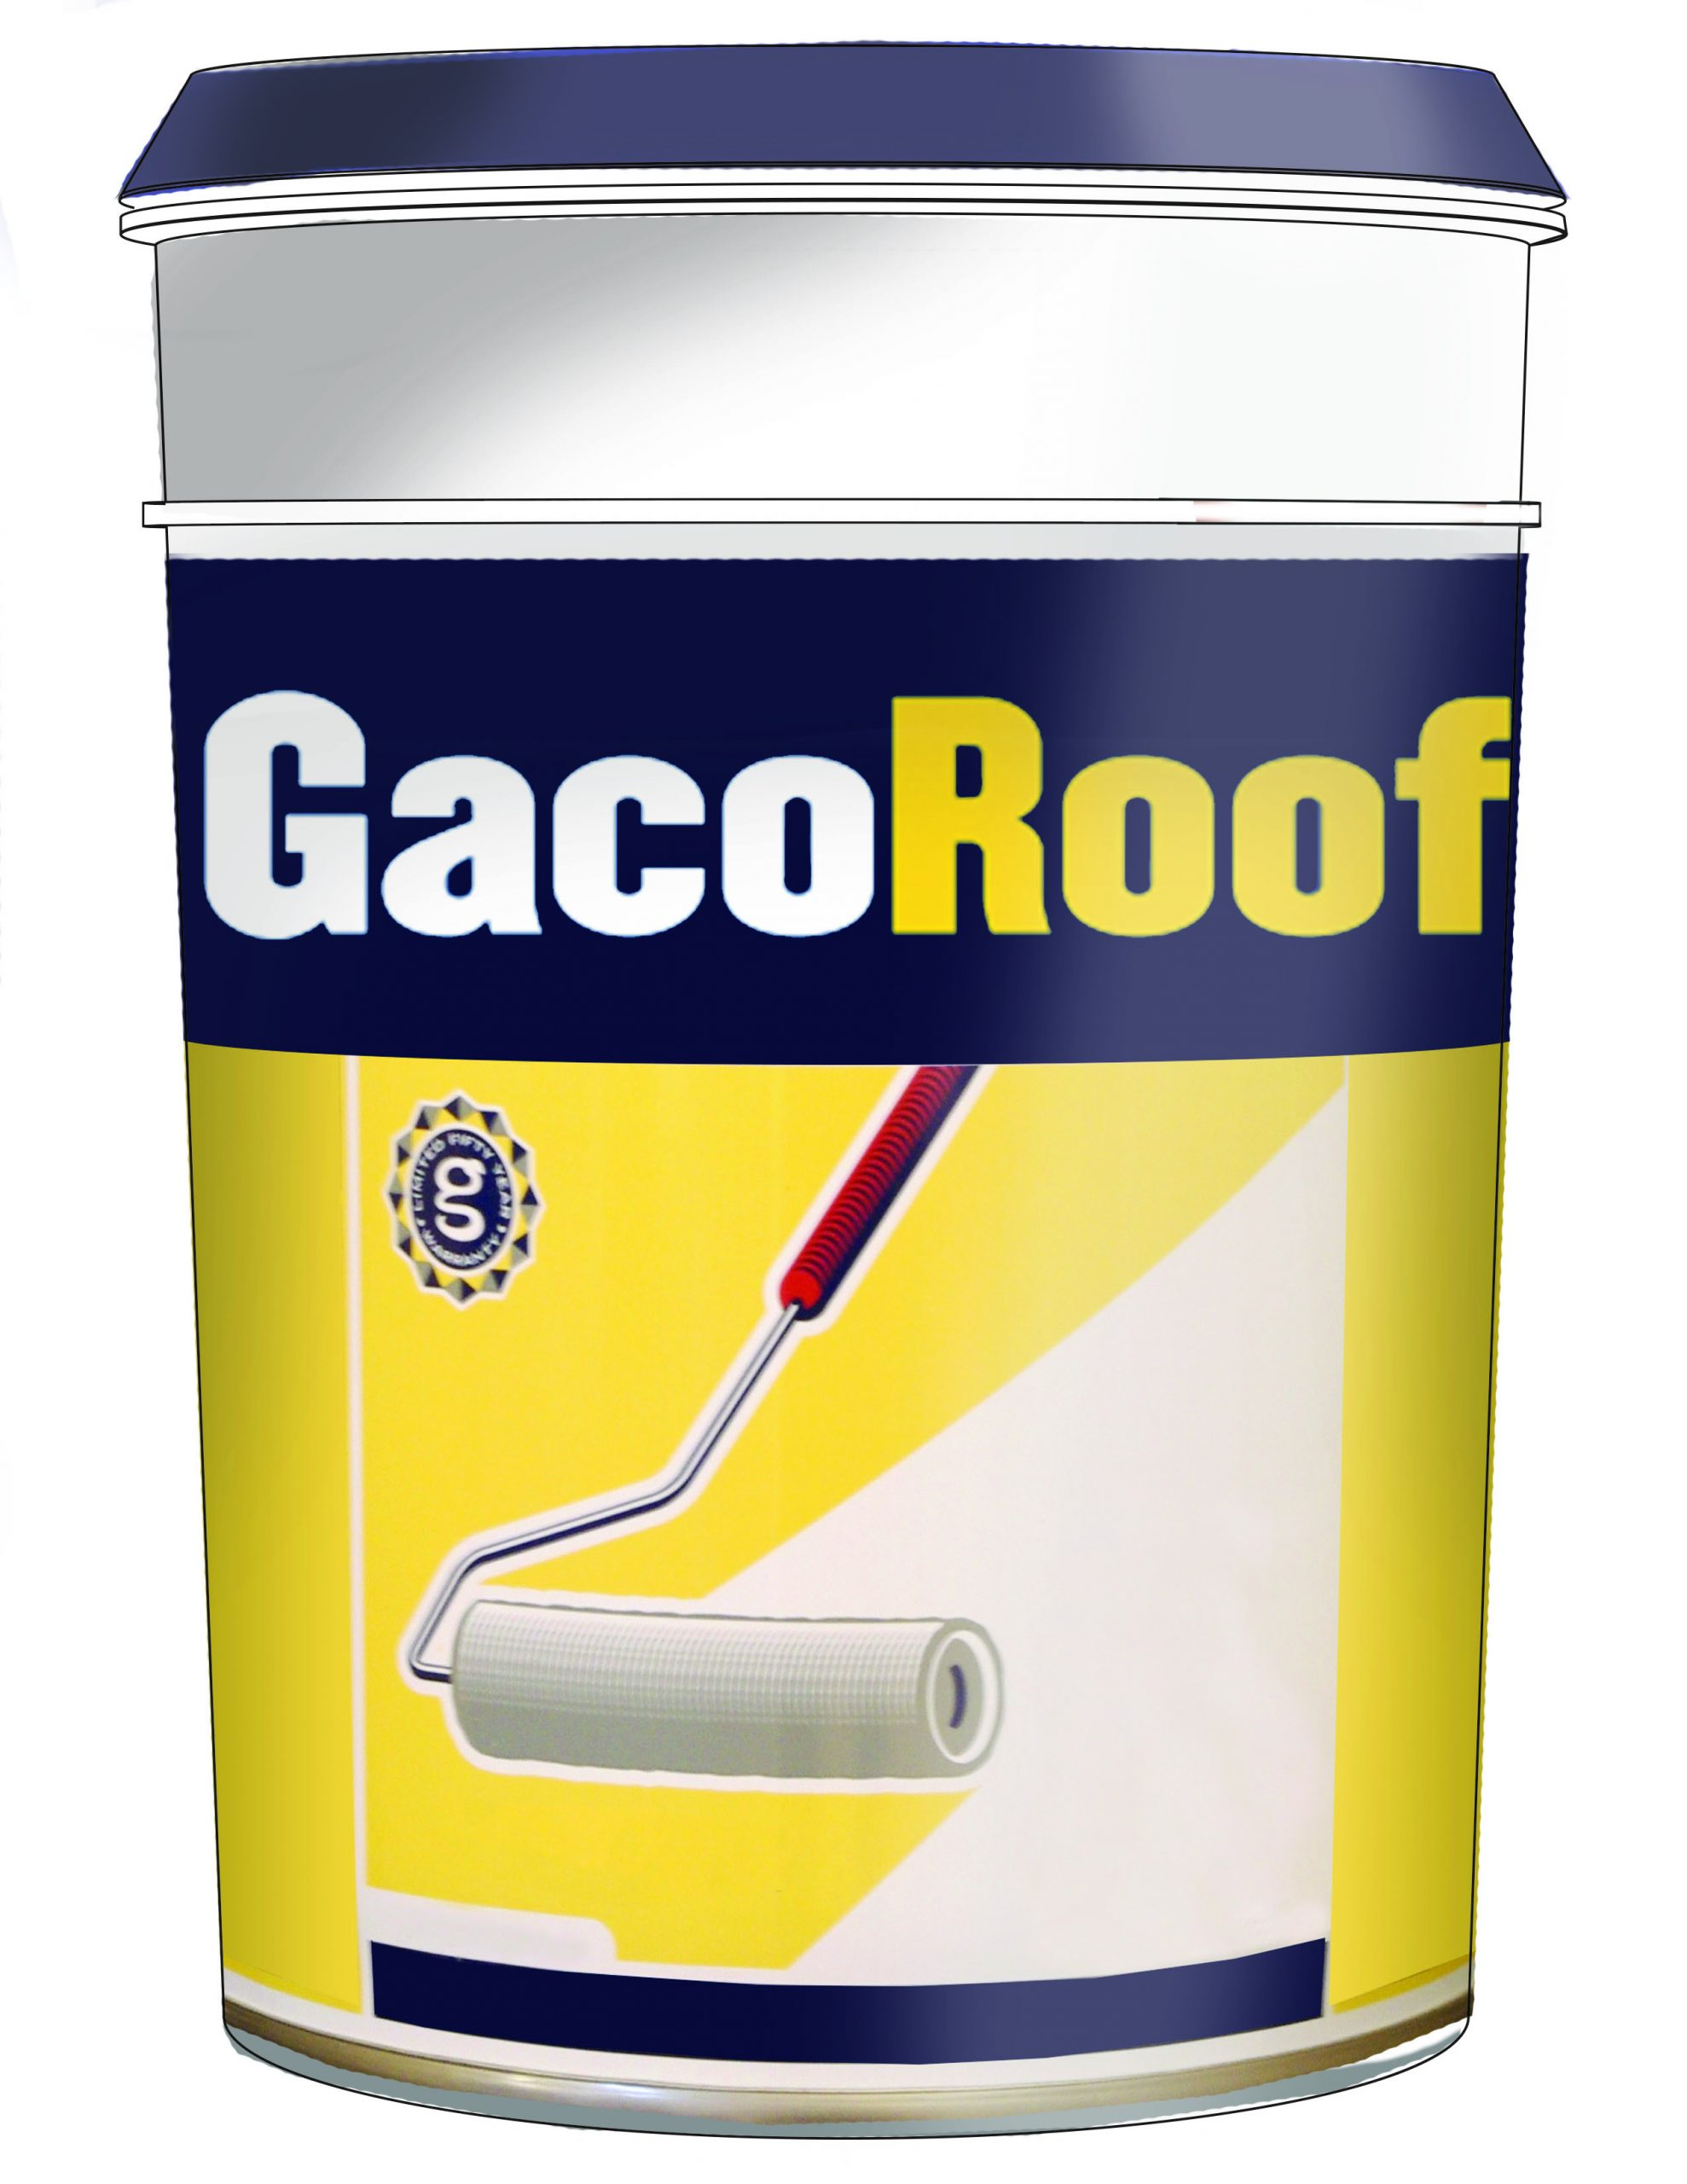 Gaco Roof Silicone Coating